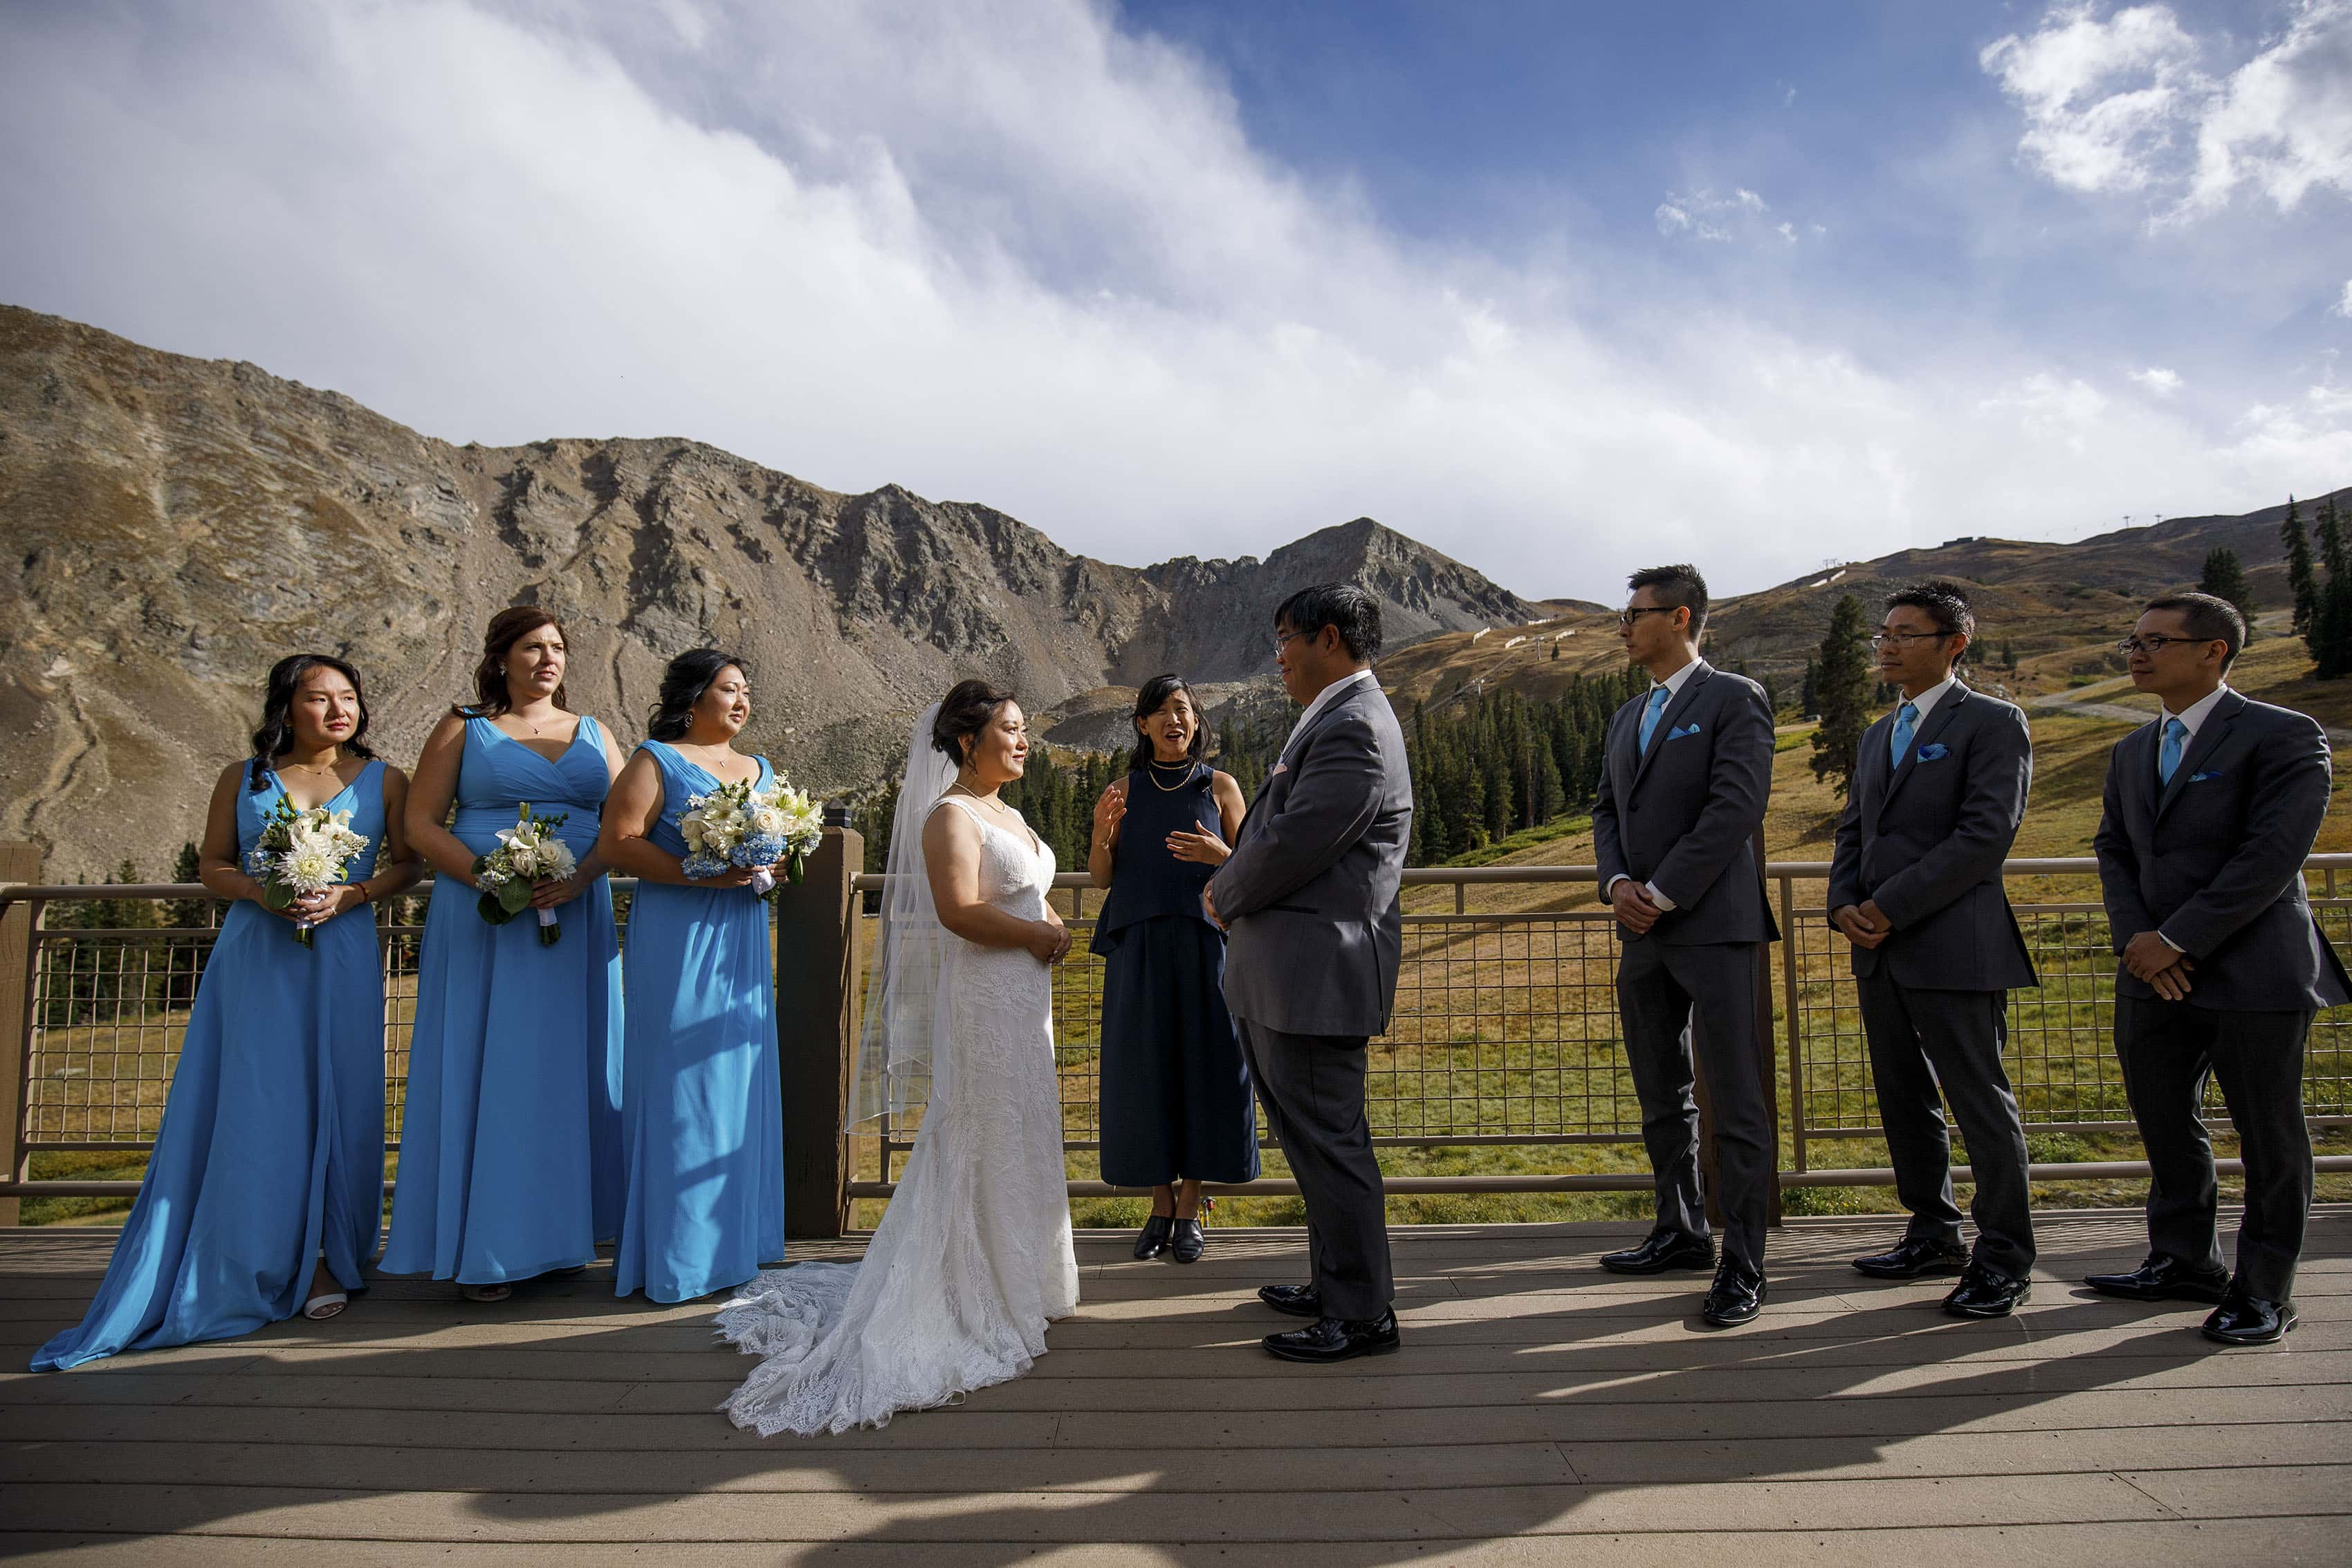 Xinya and David's wedding ceremony at Arapahoe Basin's Black Mountain Lodge deck